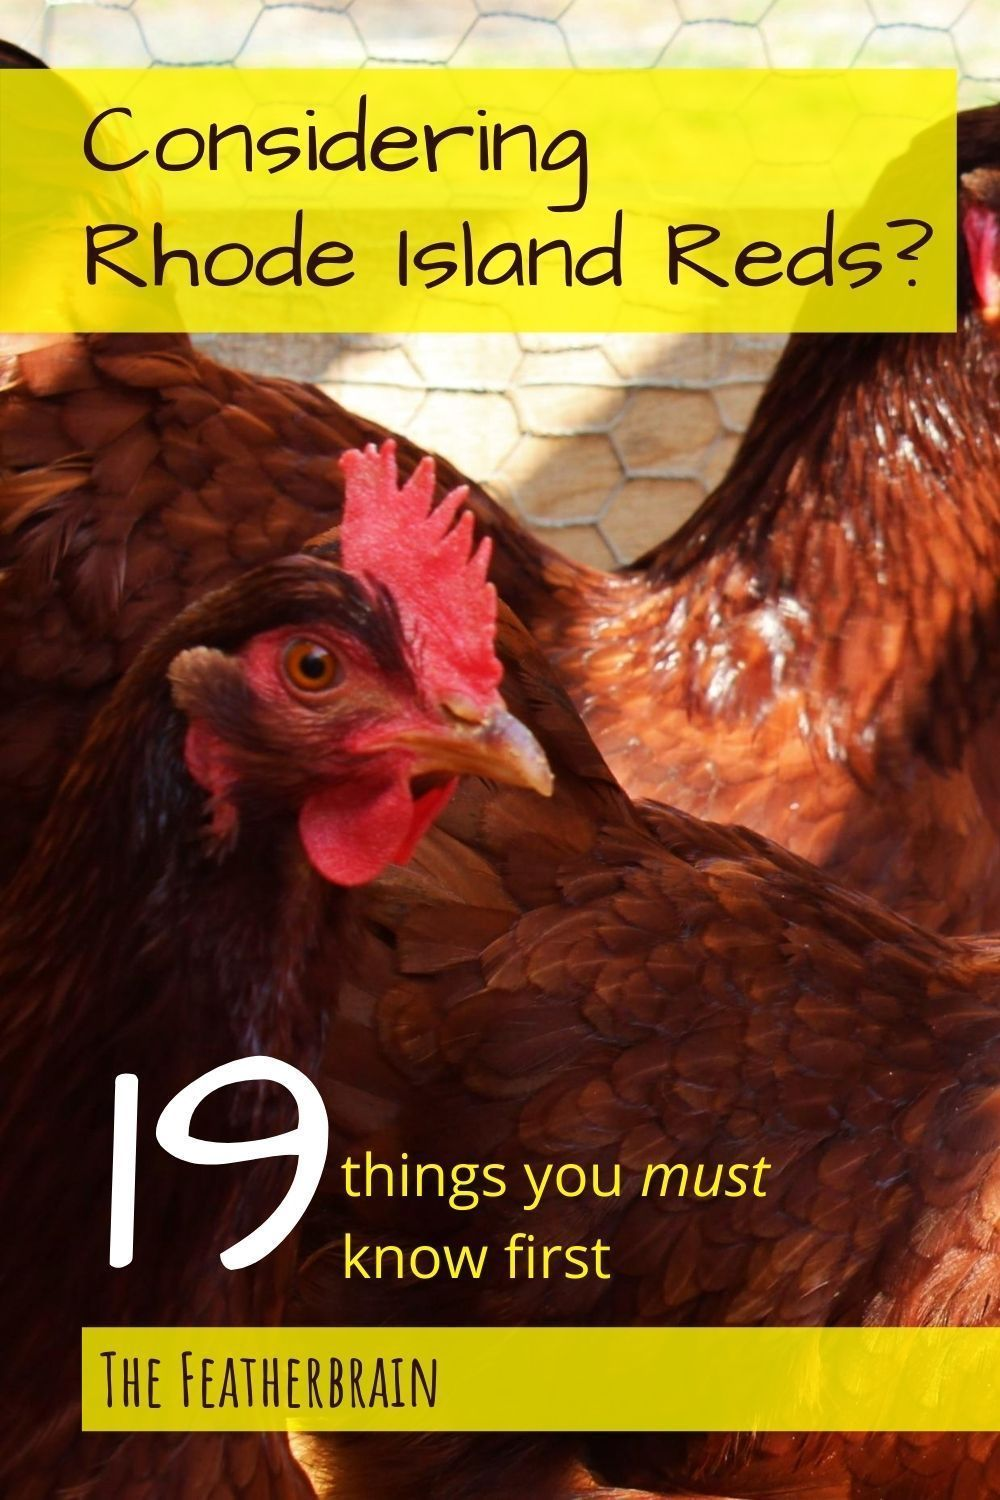 Rhode Island Red chickens: Everything you need to